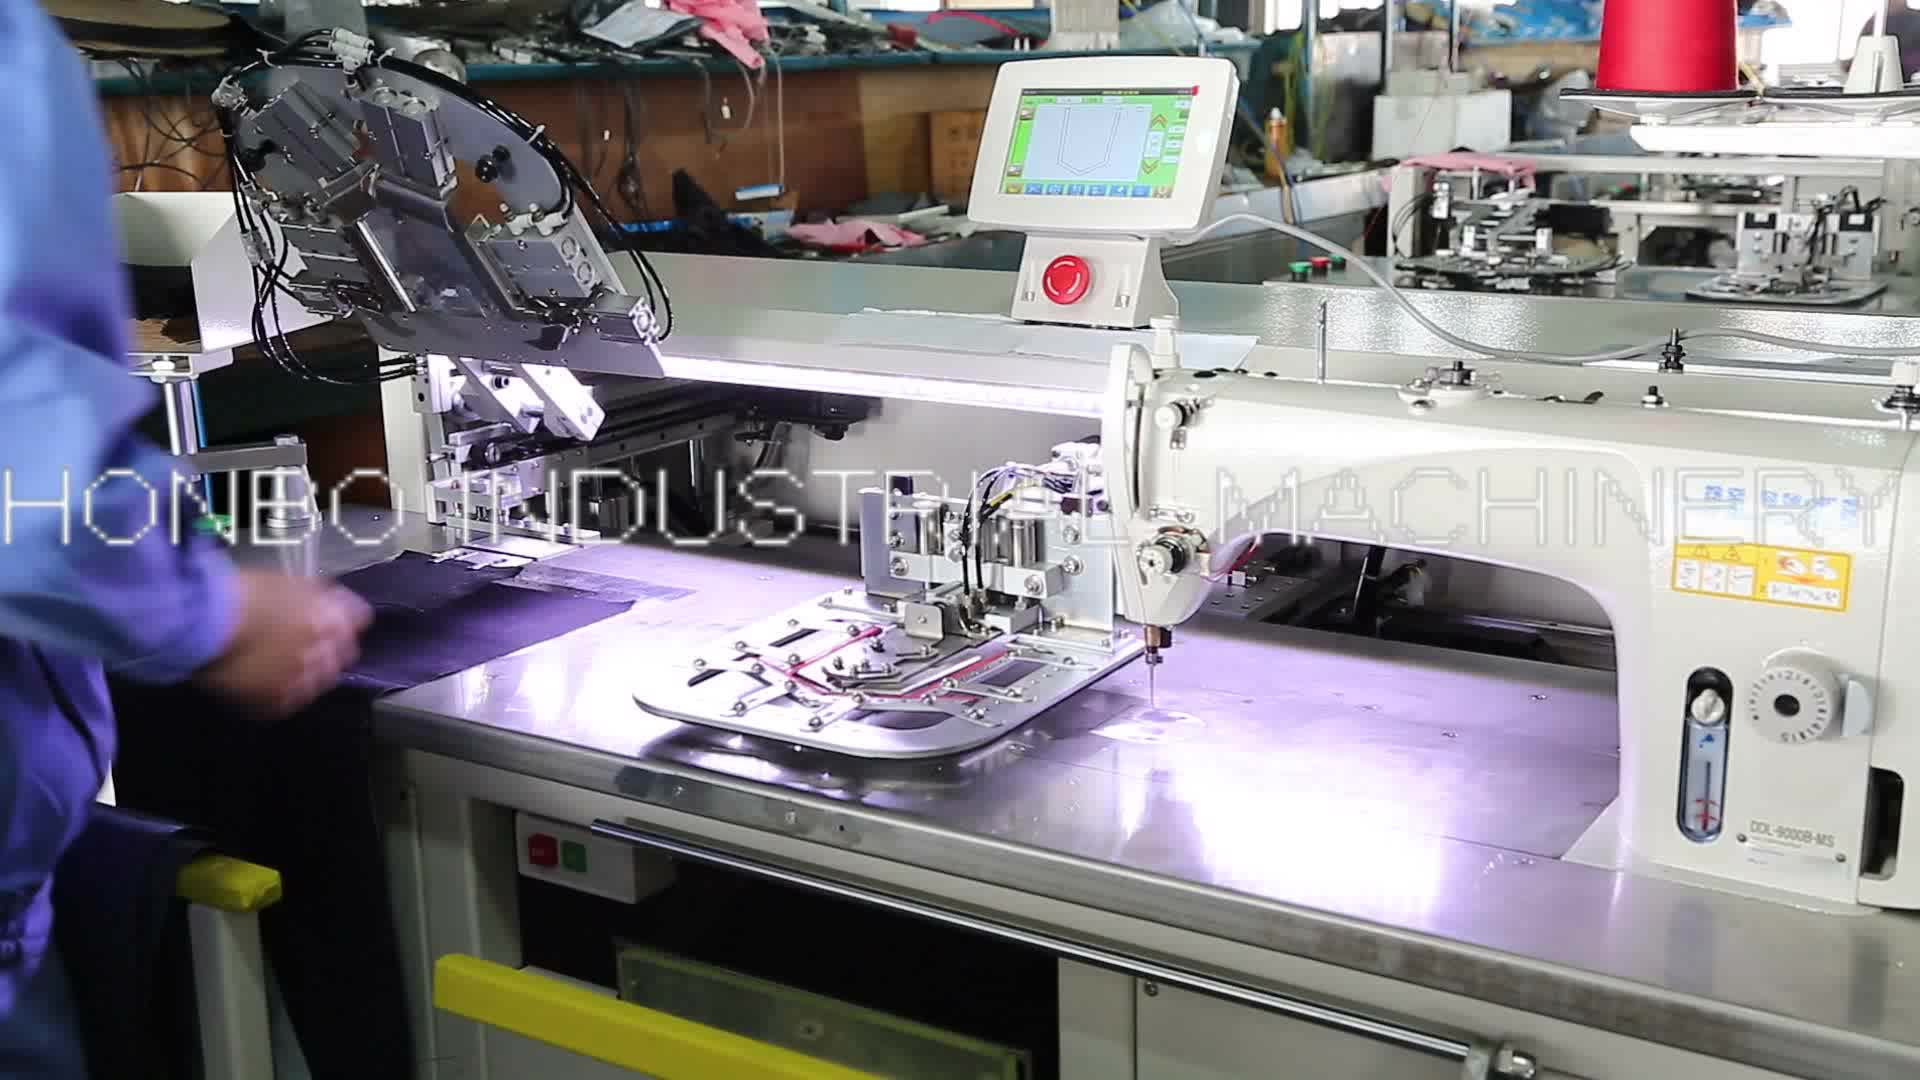 HB-166TD Programmable electronic pattern jeans pocket welting sewing machine industrial